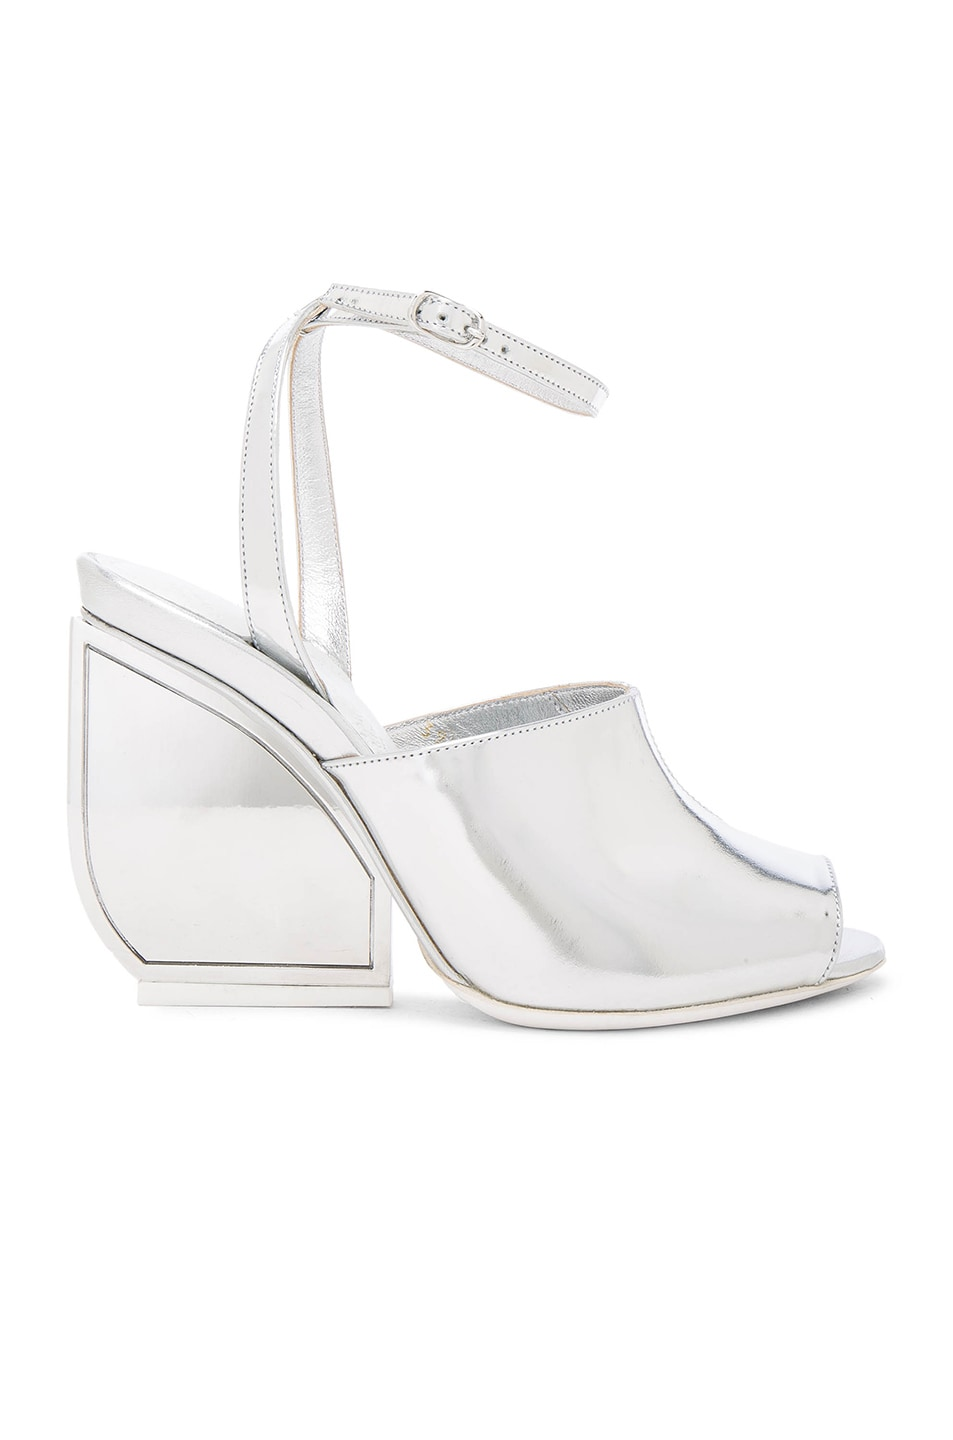 Image 1 of Maison Margiela Mirror Leather Heels in Silver